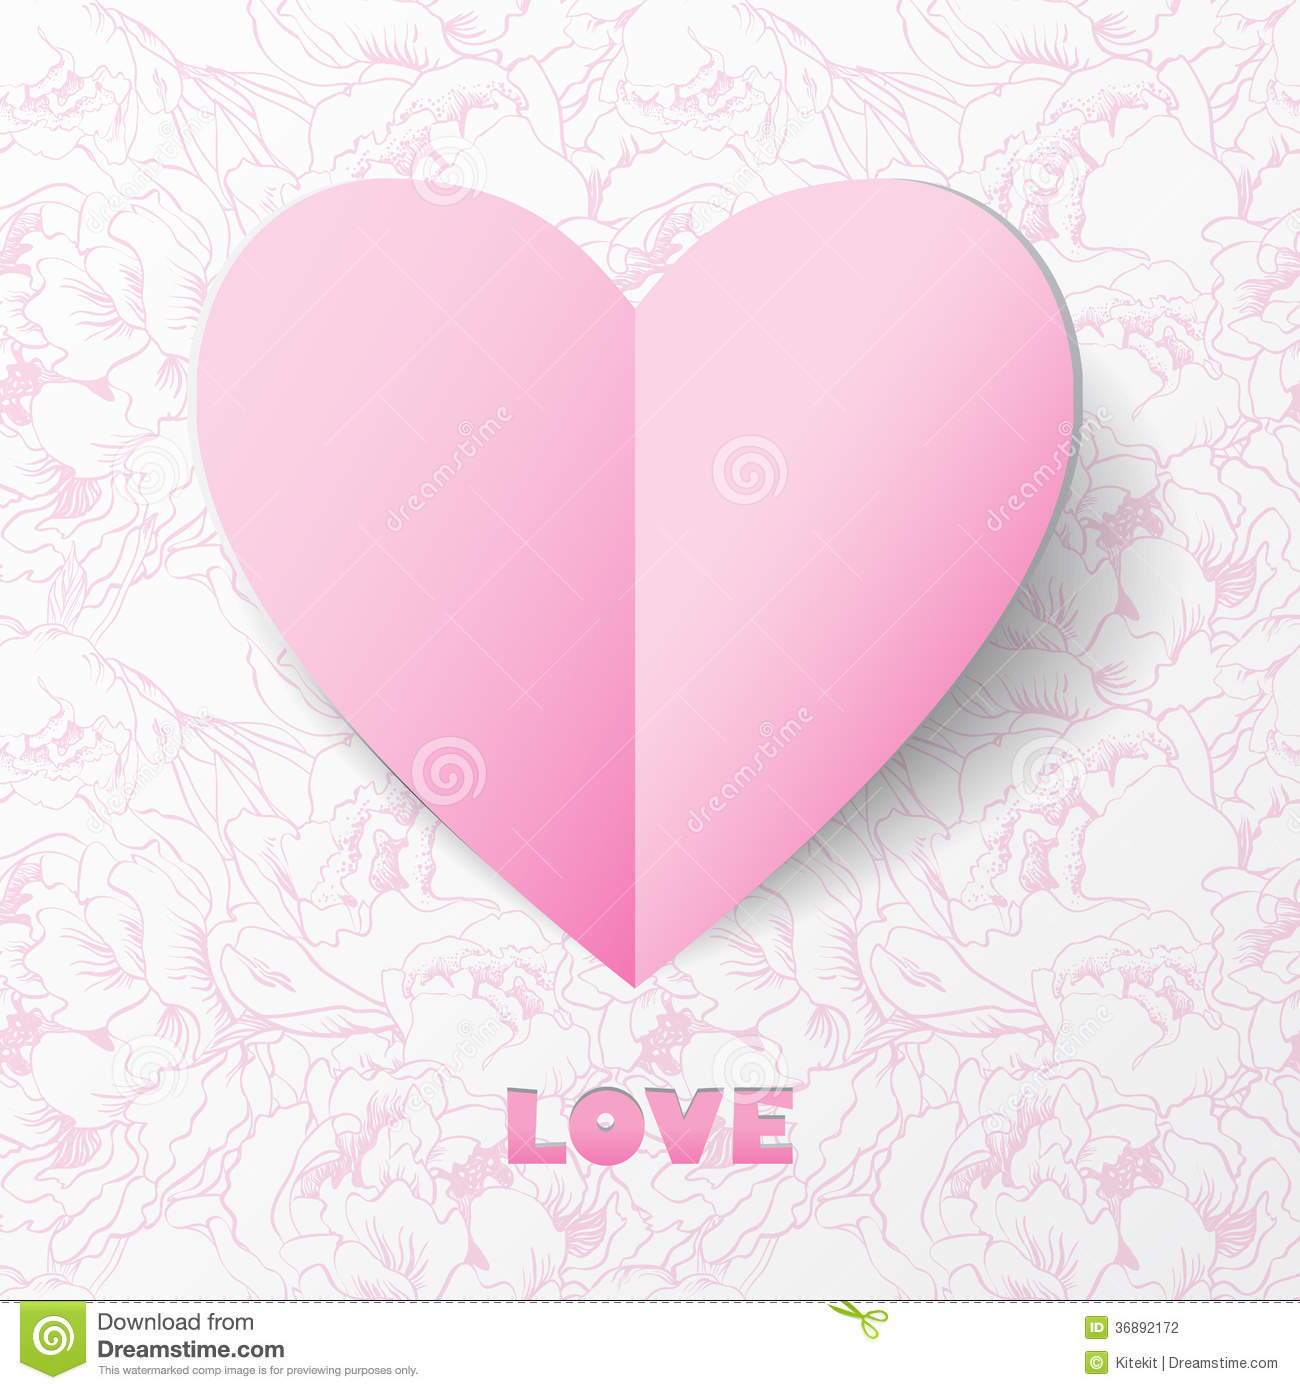 Love cards Images Wallpaper : Paper Heart Love card On Flower Background. Template For Design Stock Vector - Image: 36892172